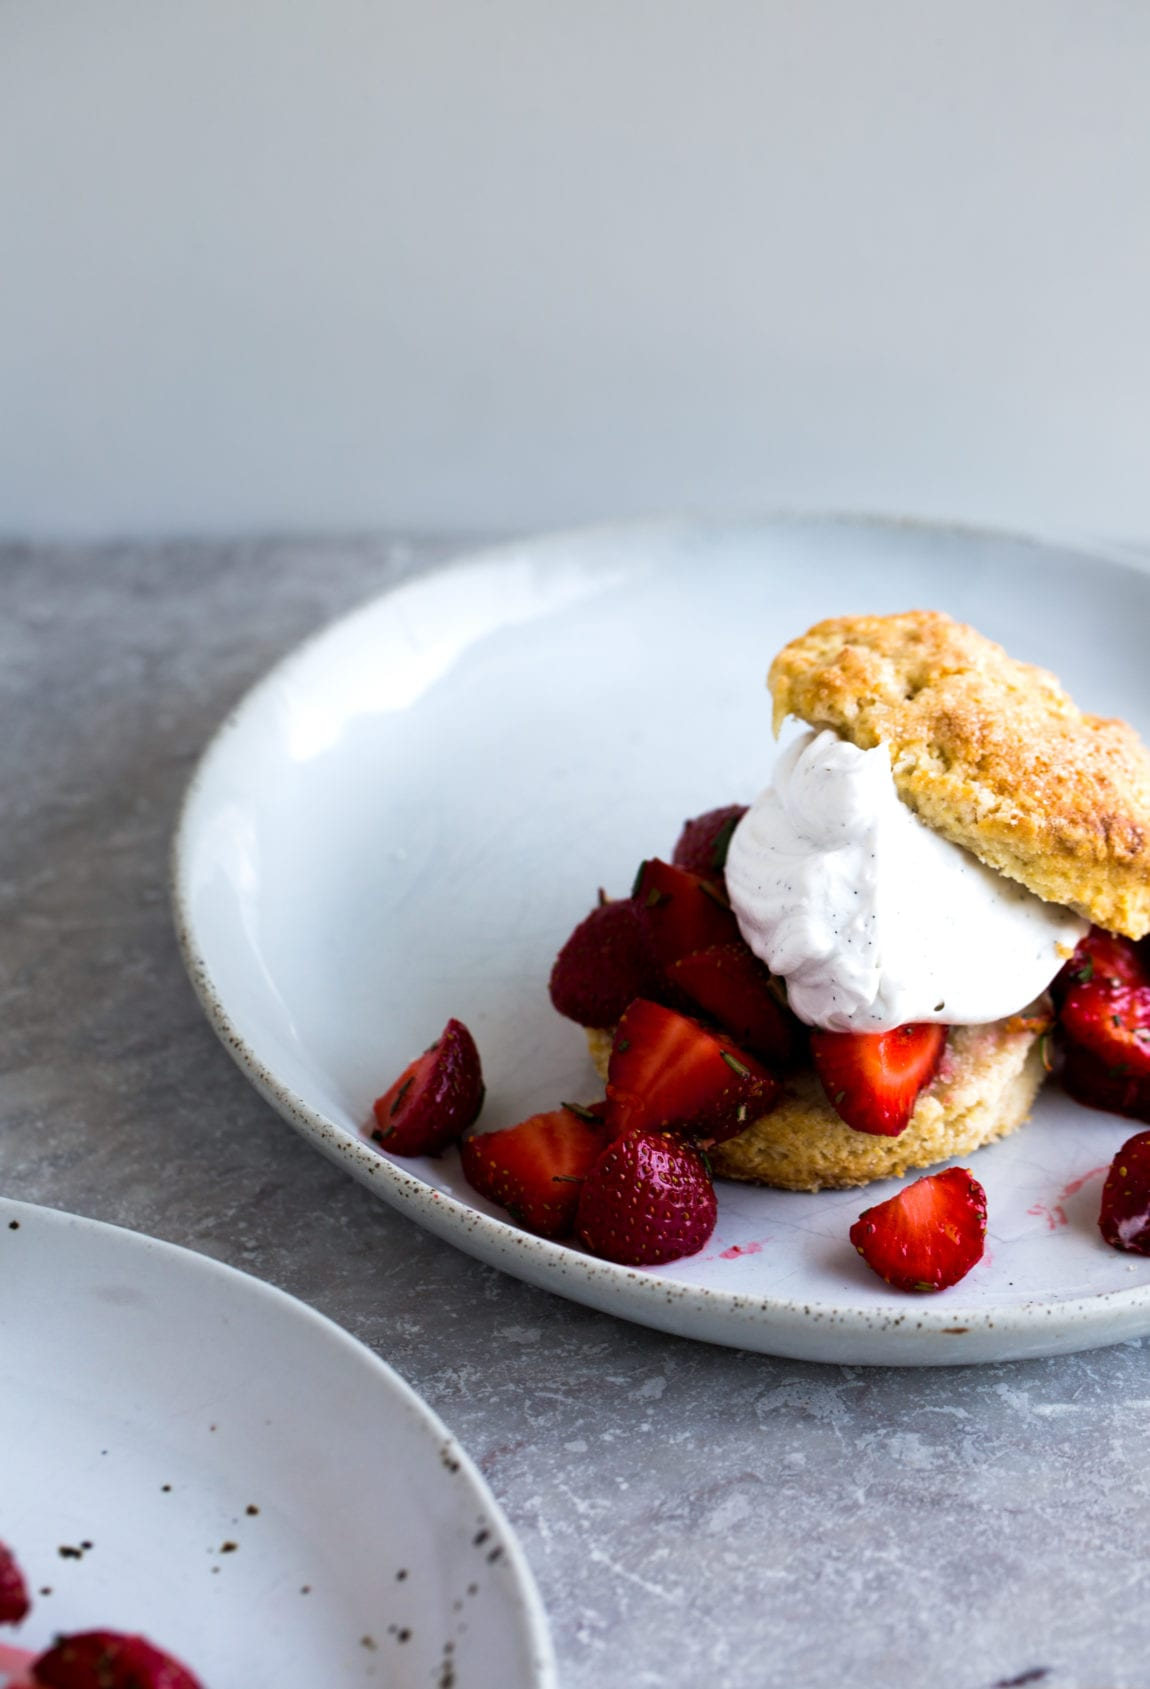 Barley & Rosemary Strawberry Shortcakes with Vanilla Bean Coconut Whipped Cream